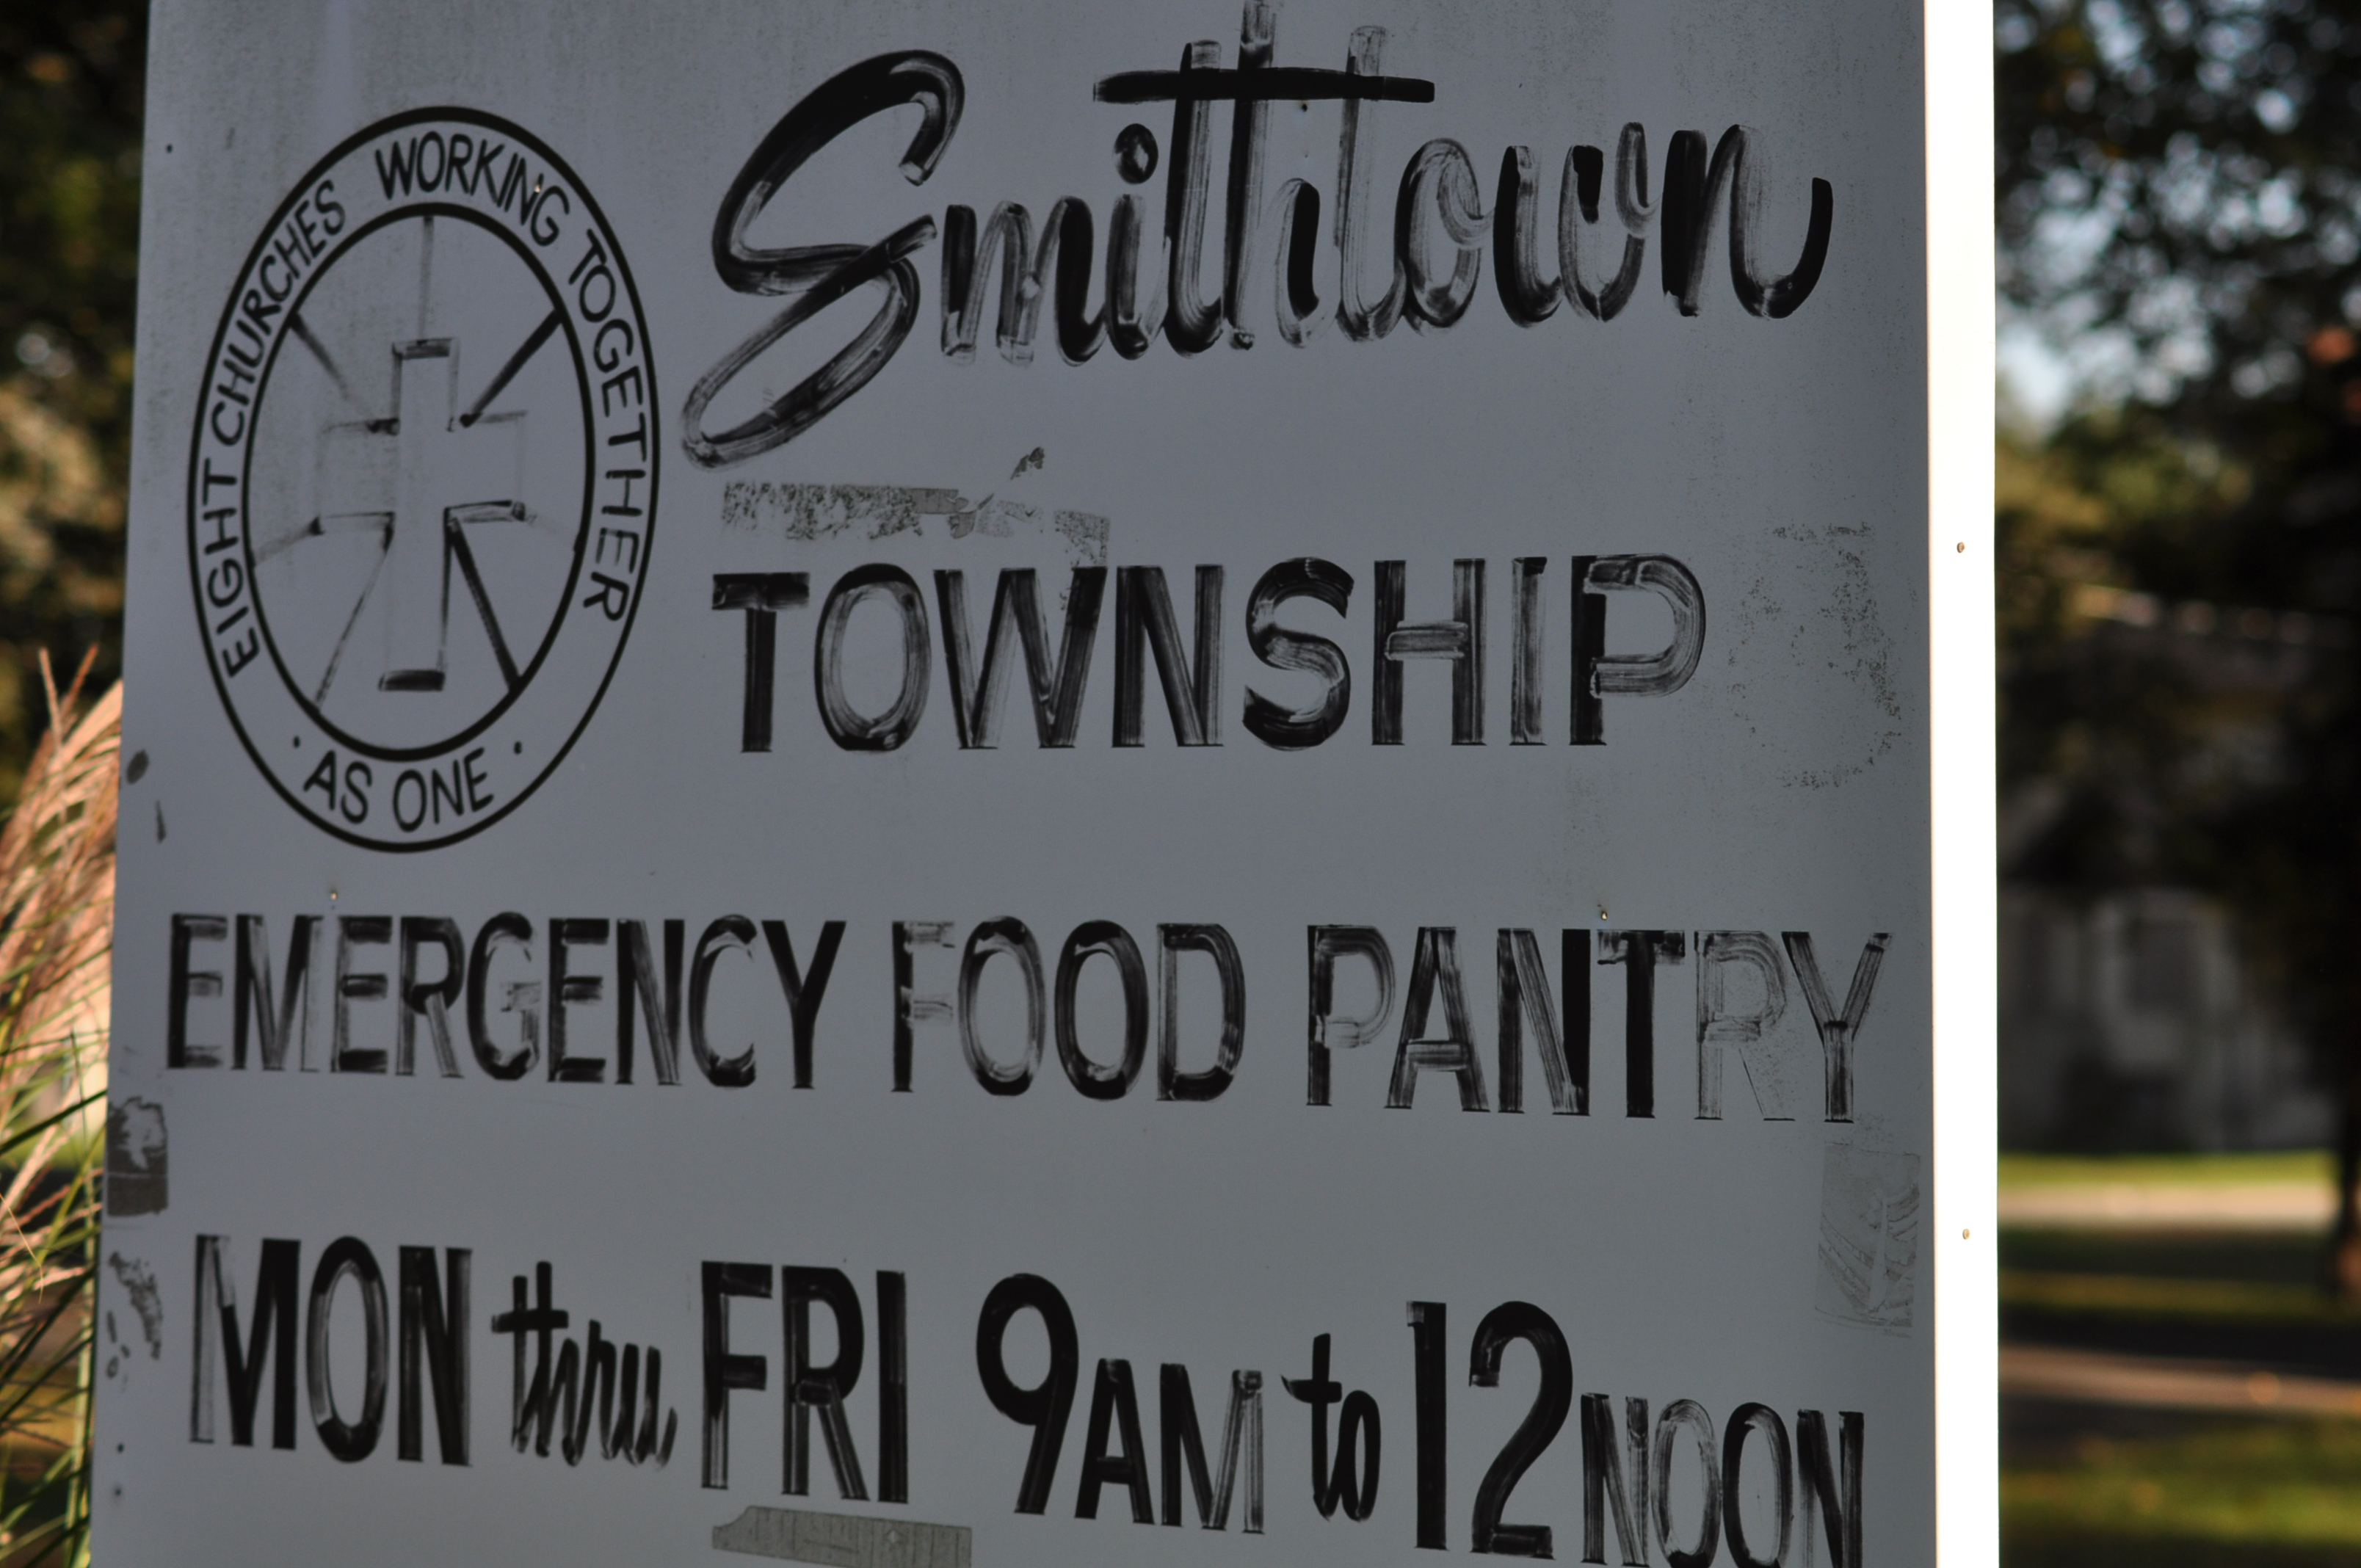 Smithtown Emergency Food Pantry